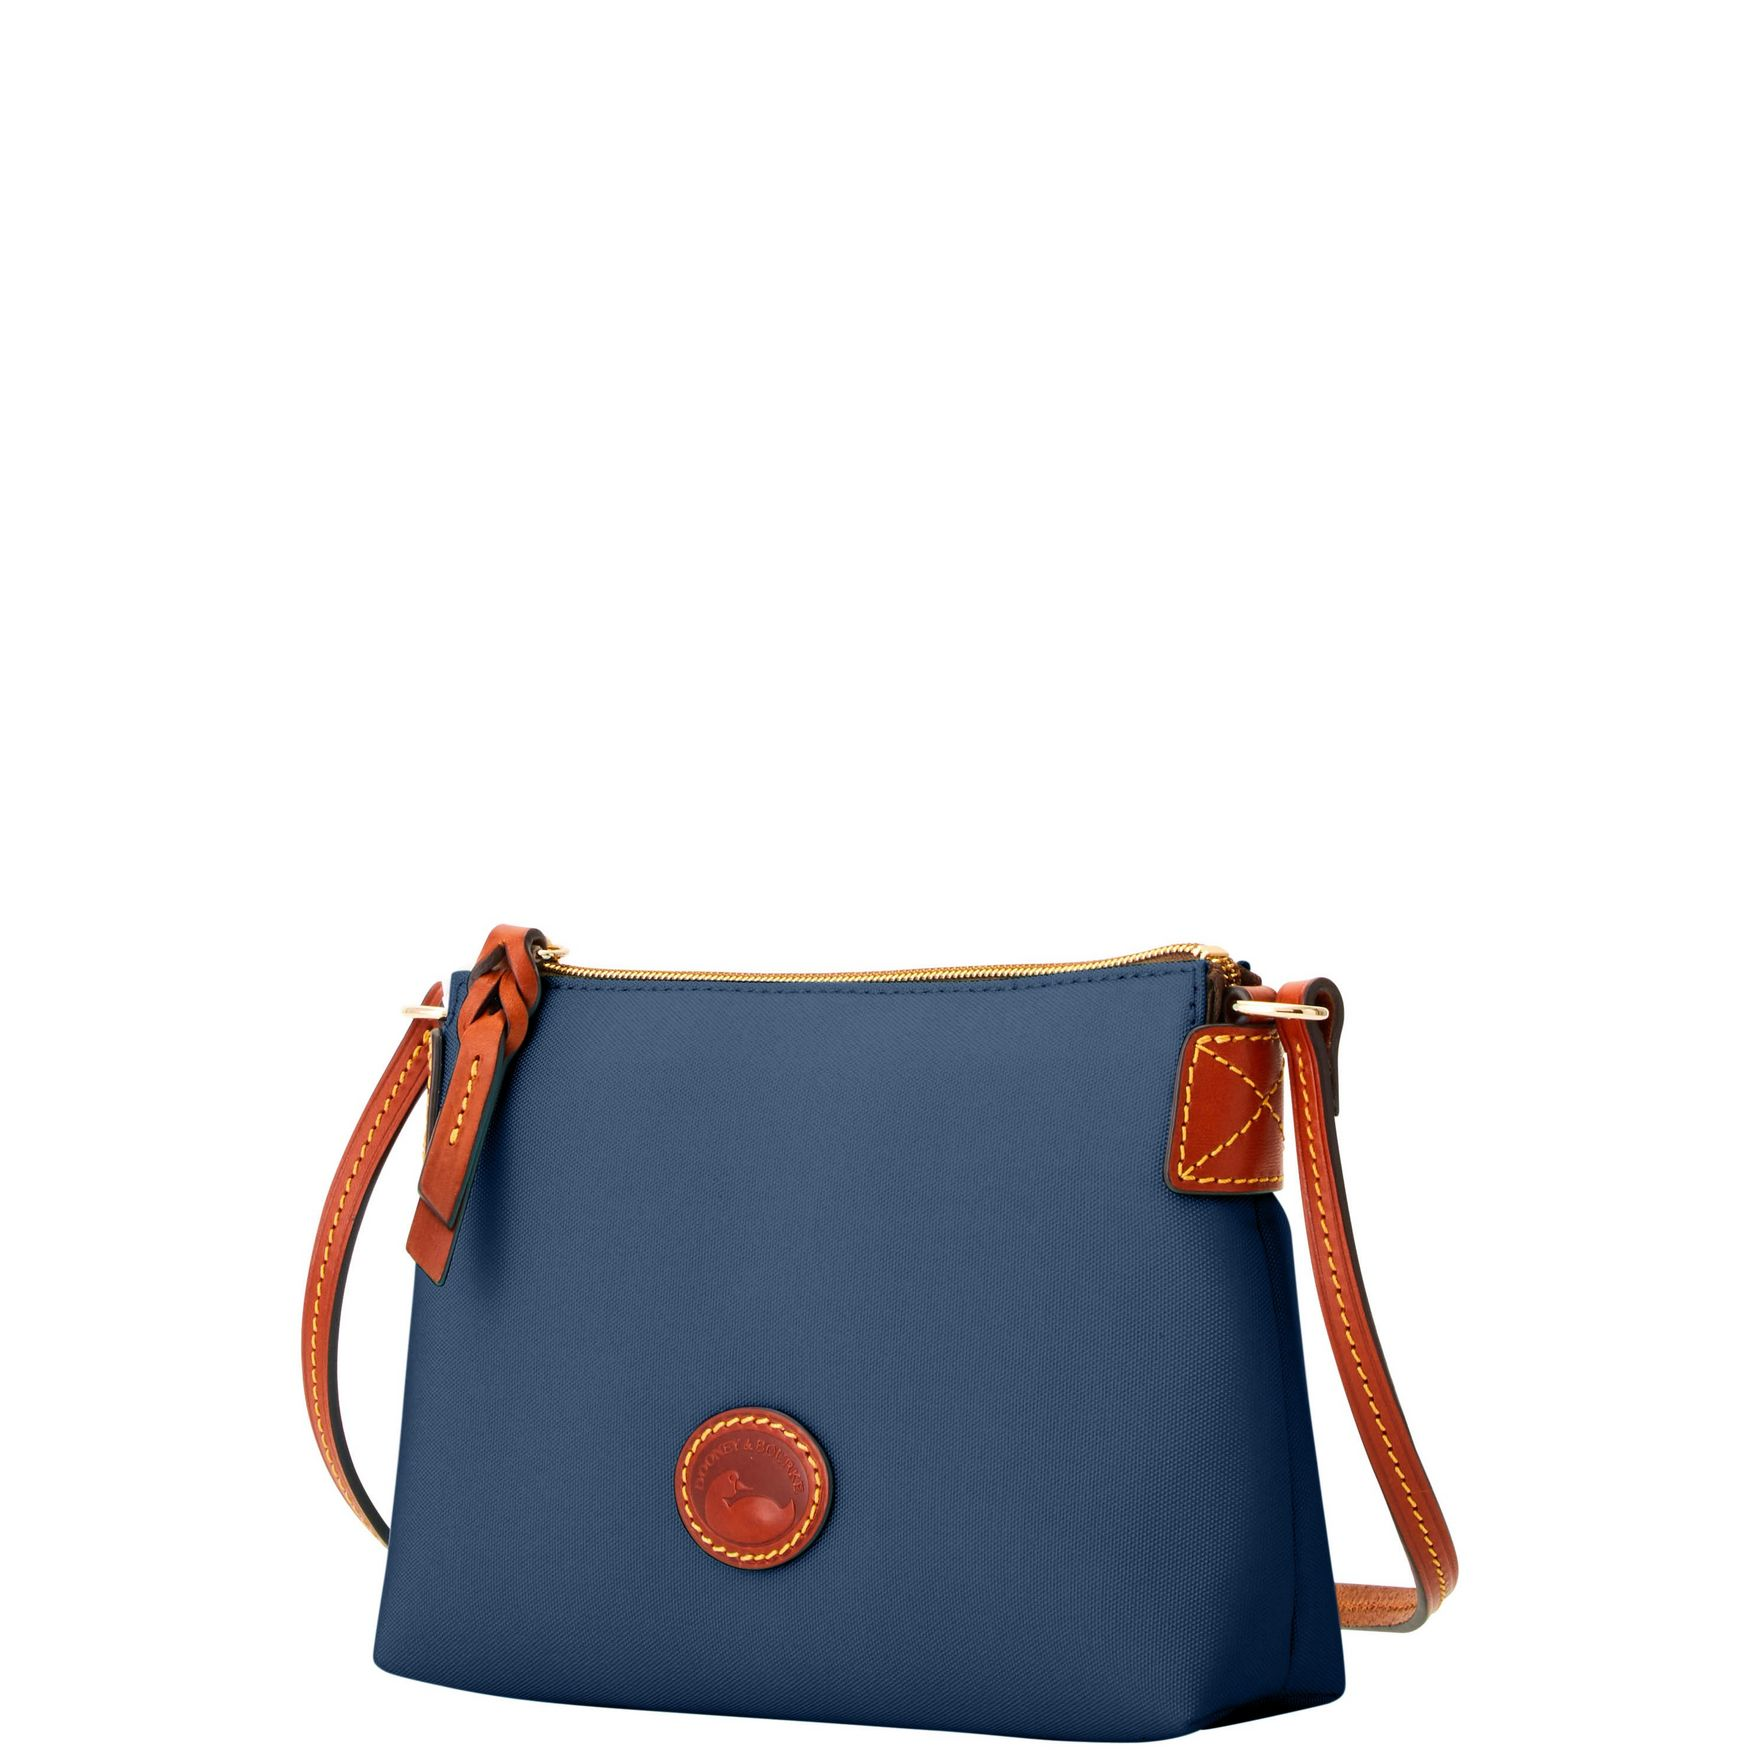 Dooney-amp-Bourke-Nylon-Crossbody-Pouchette-Shoulder-Bag thumbnail 39